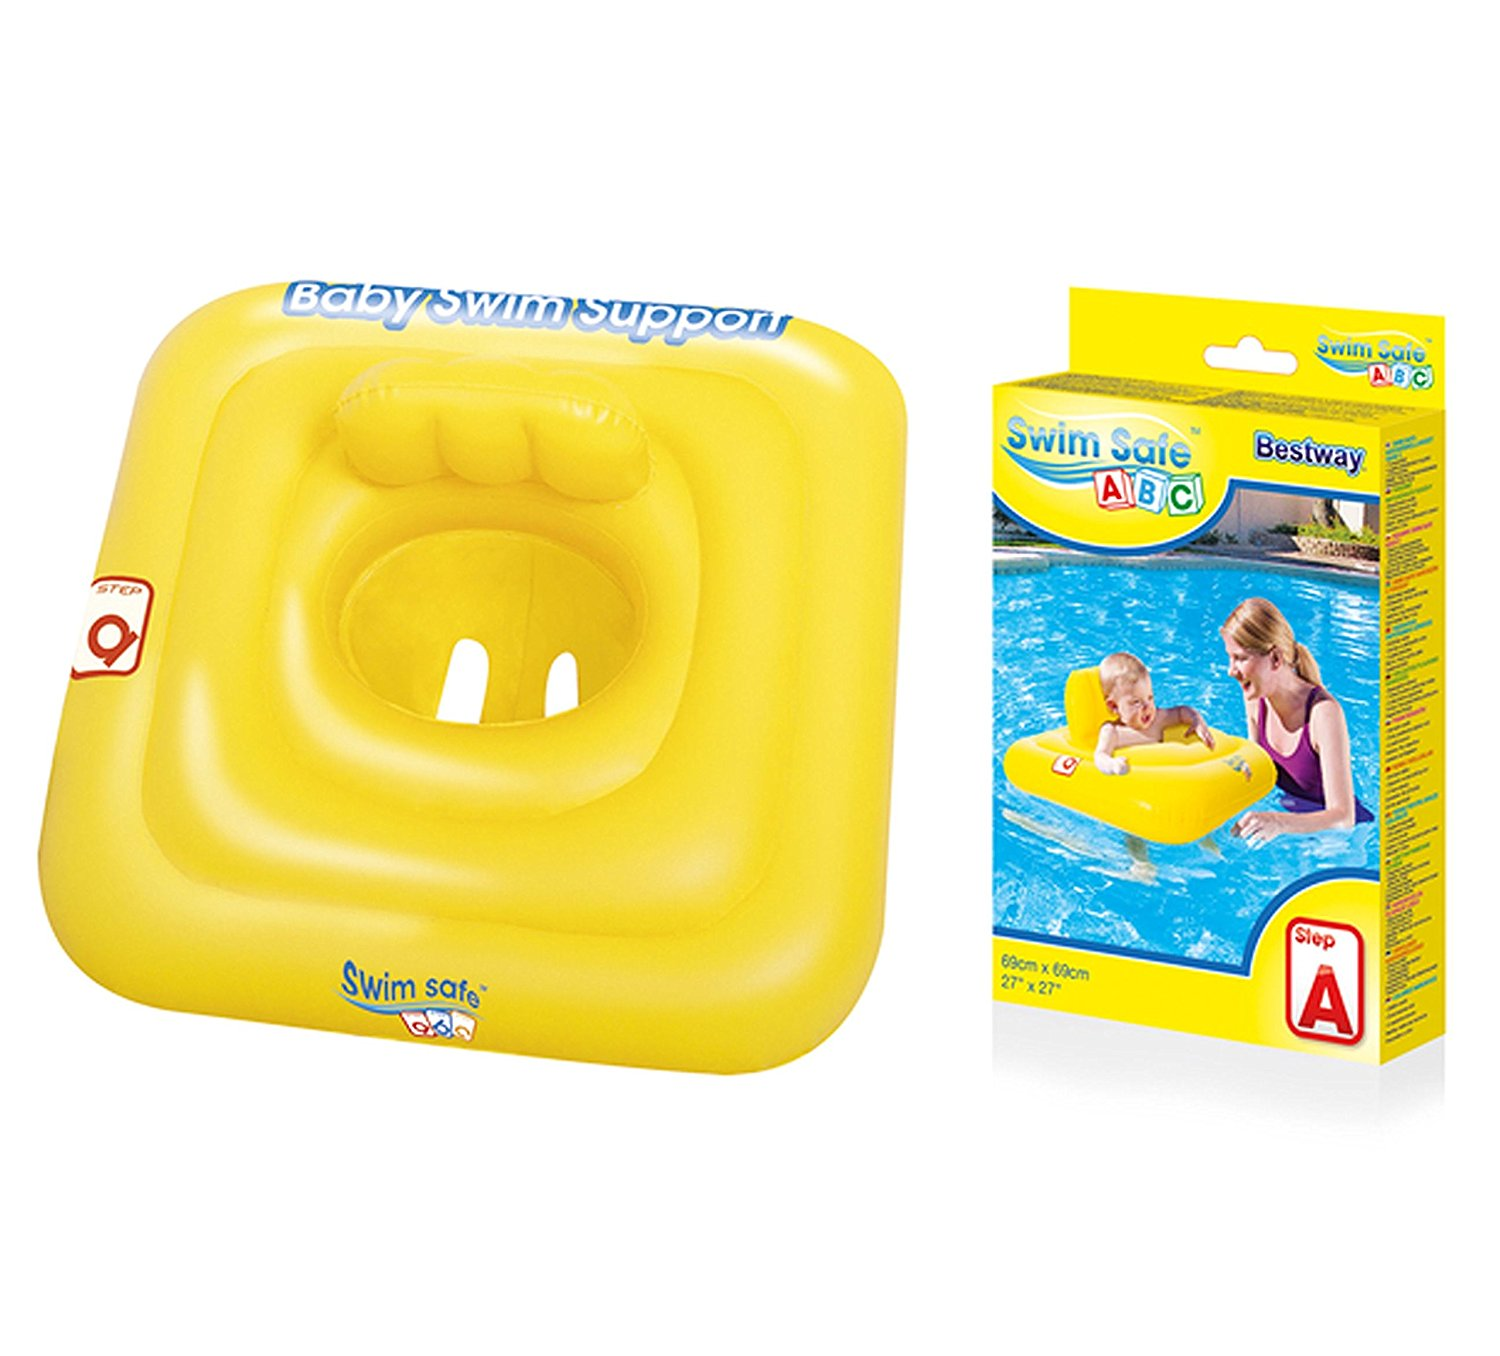 Armbands and Floats For Kids | Floatation devices - Learn to Swim